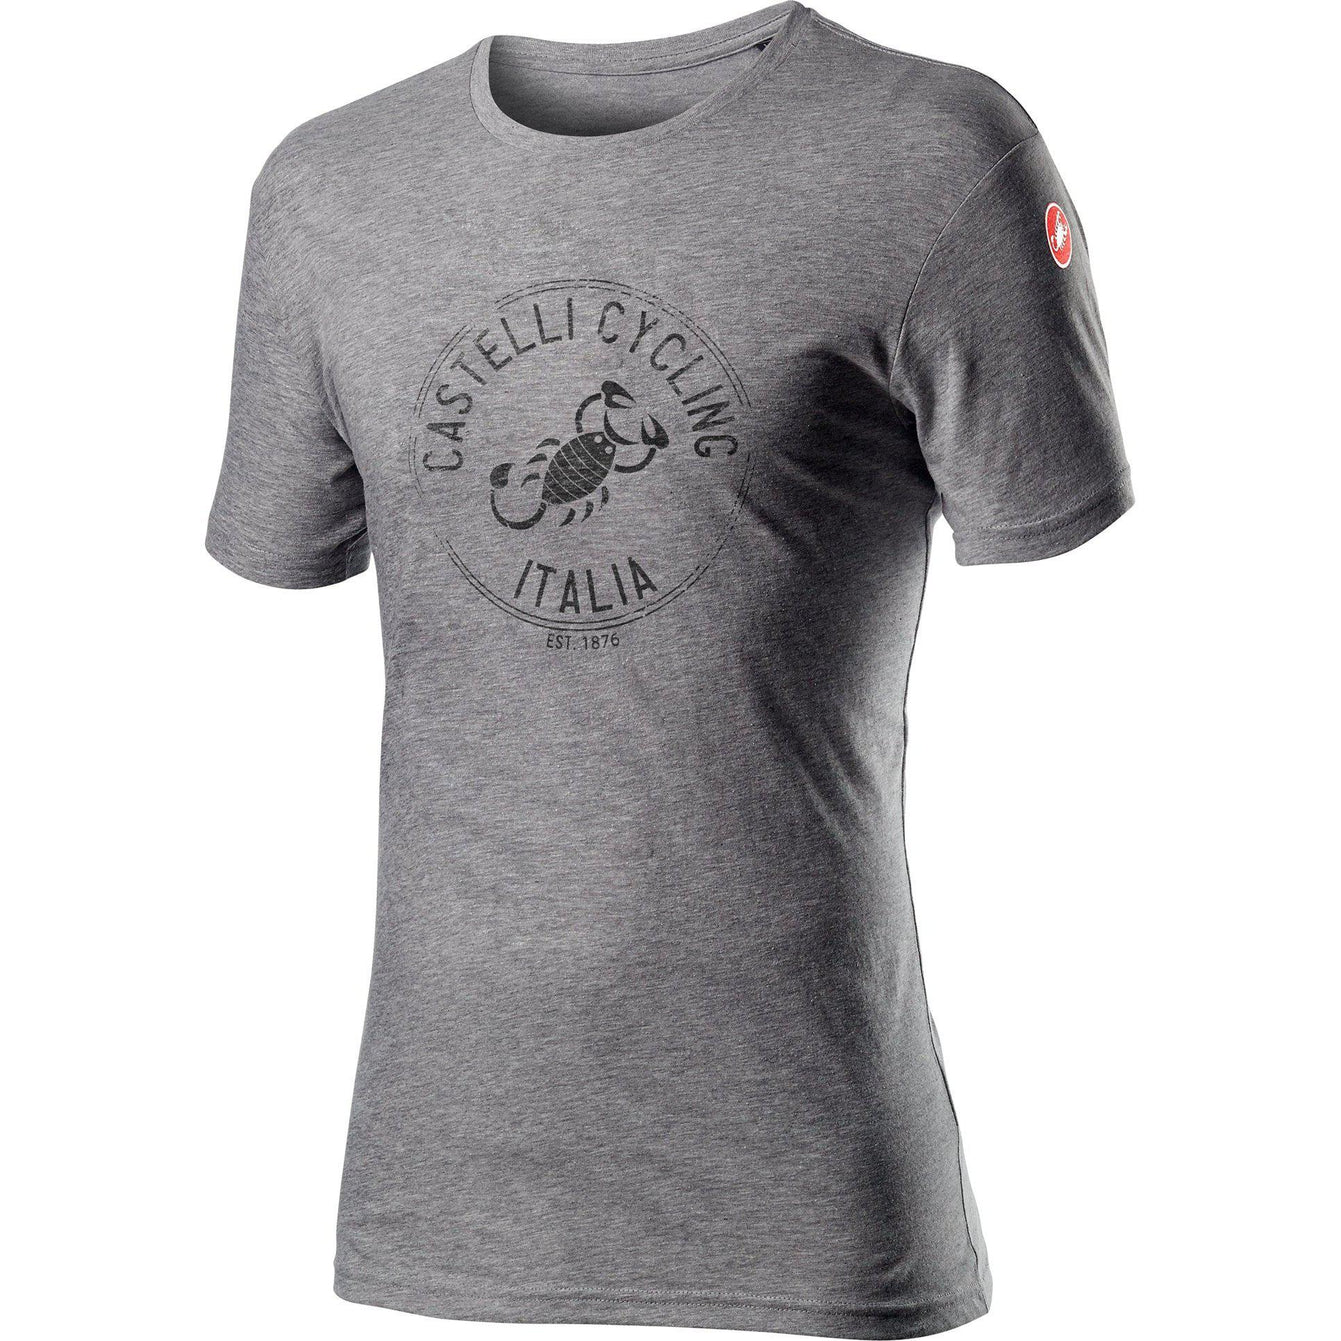 Castelli-Castelli Armando T-shirt-Melange Vortex Grey-XS-CS160658601-saddleback-elite-performance-cycling